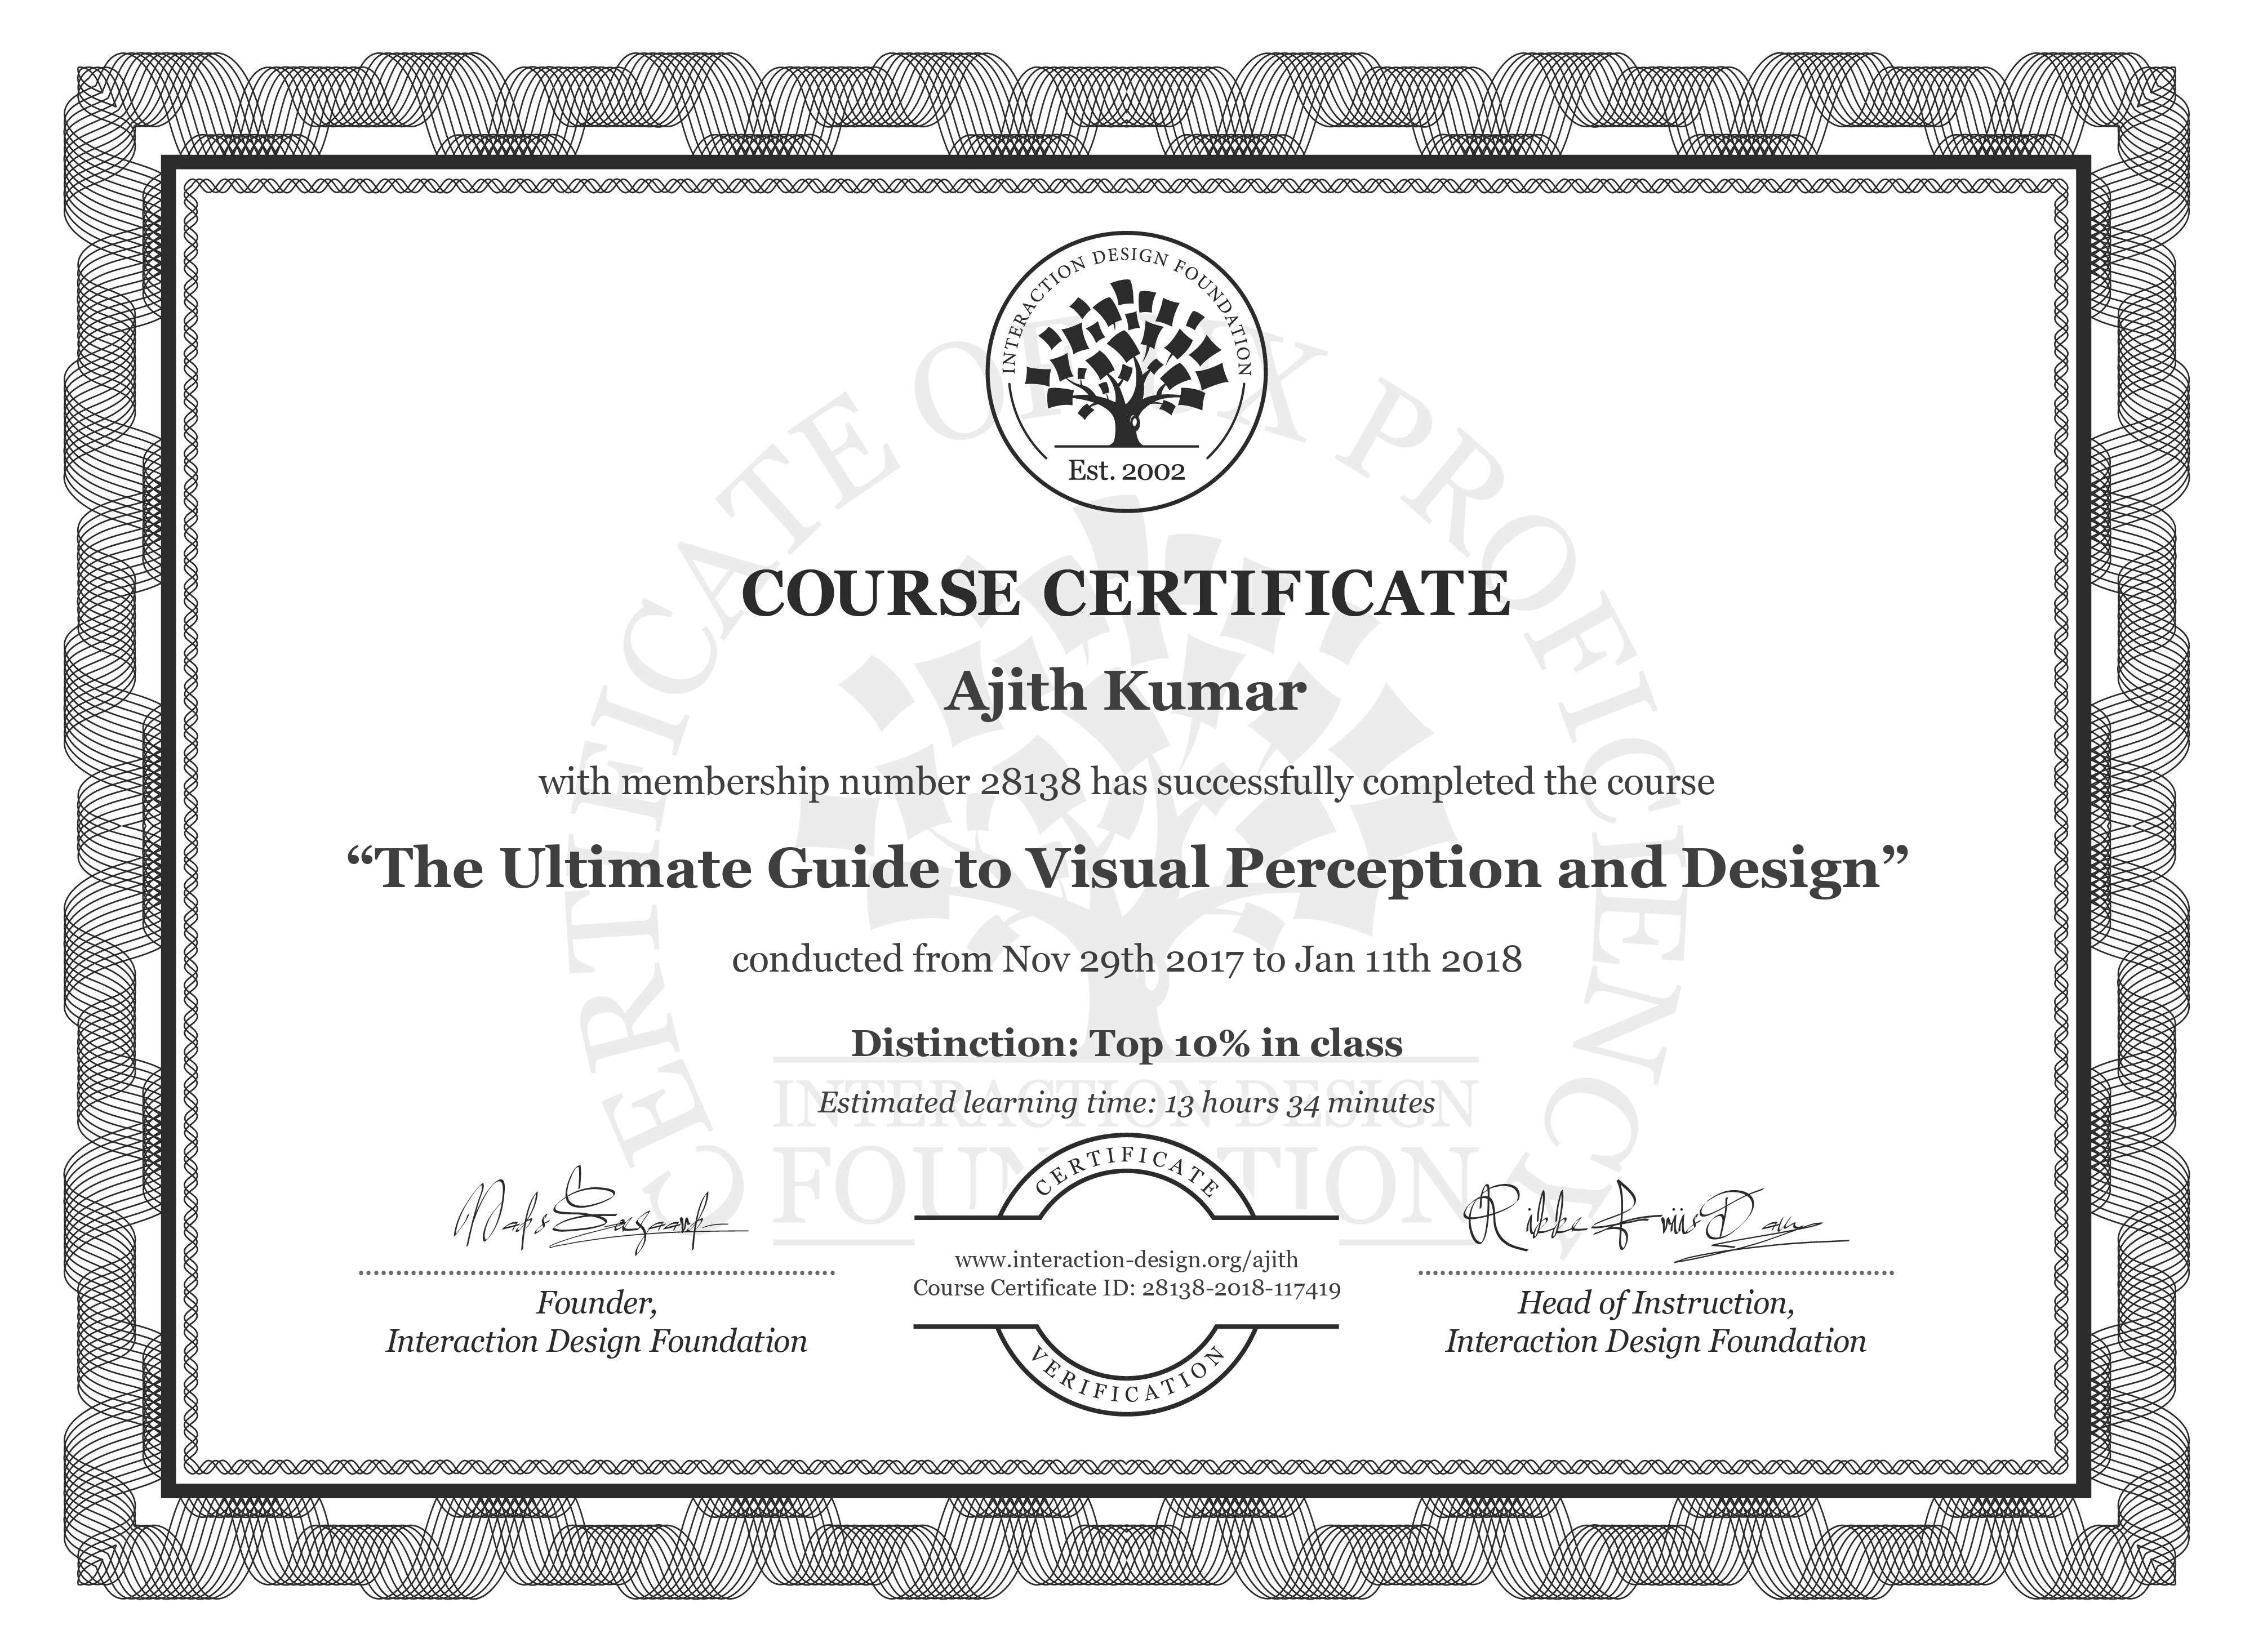 Ajith Kumar: Course Certificate - The Ultimate Guide to